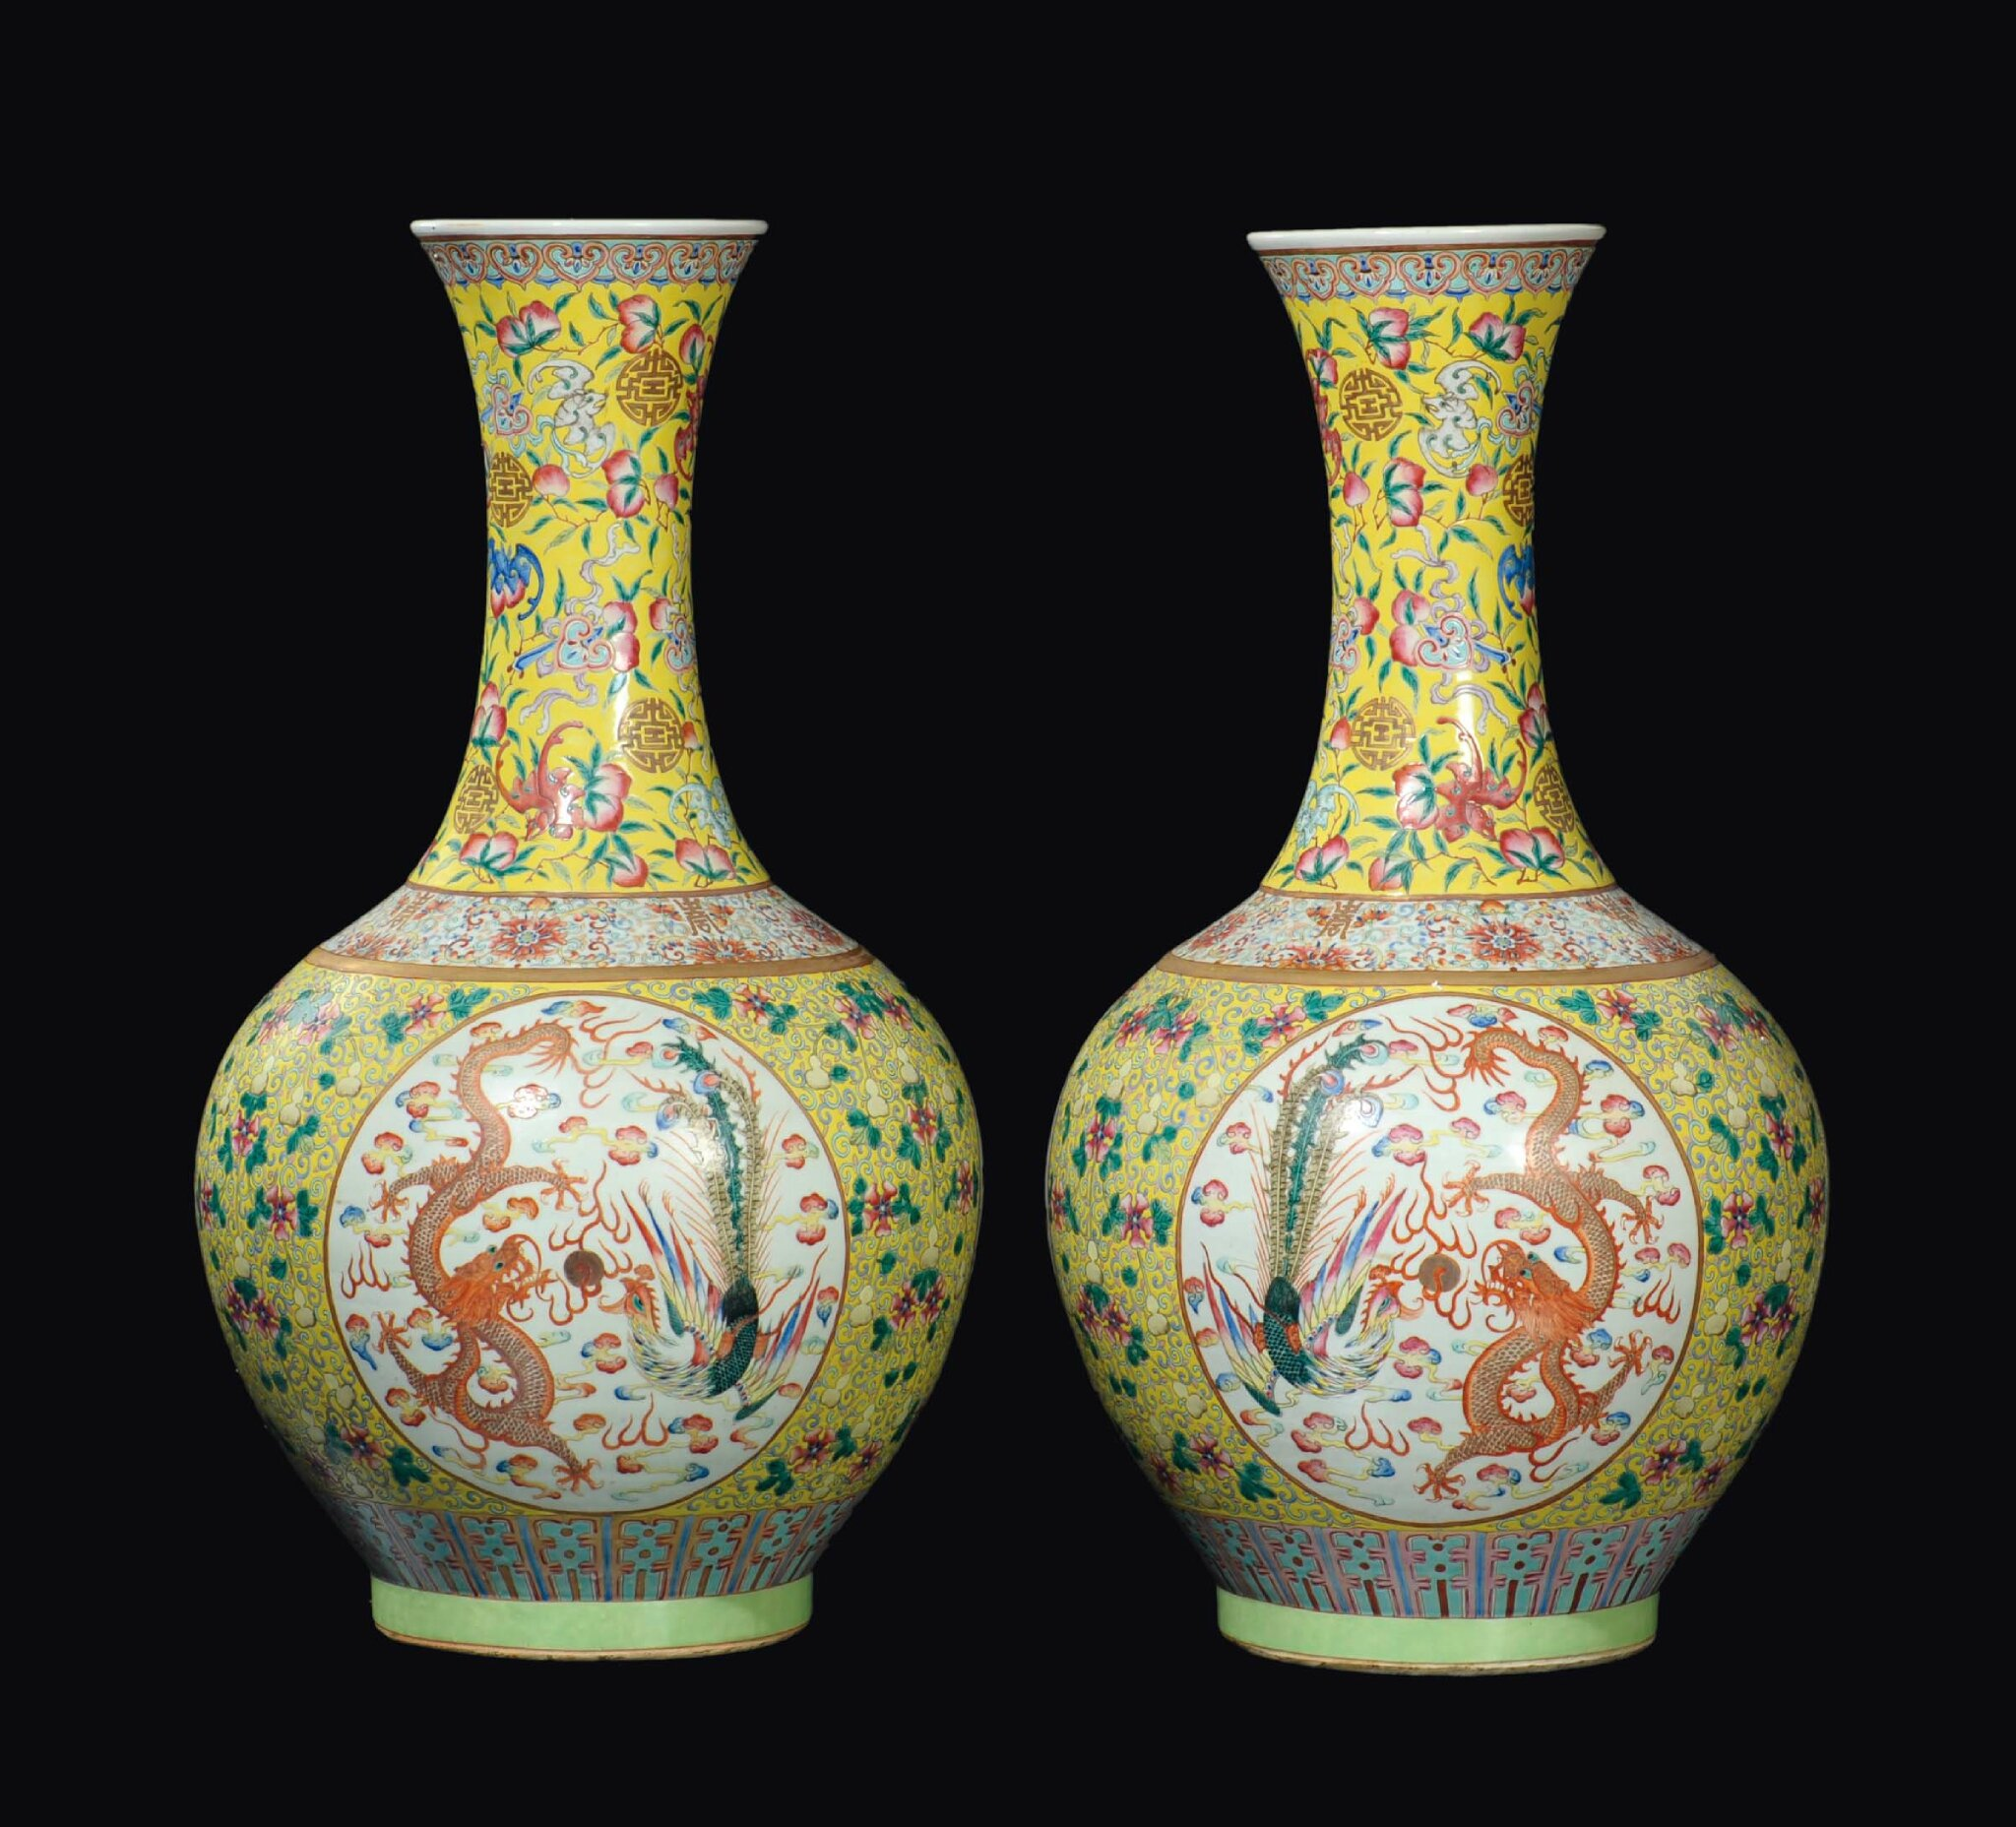 A large and important fine pair of yellow-ground porcelain bottle vases, Qing Dynasty, Guangxu Mark and Period